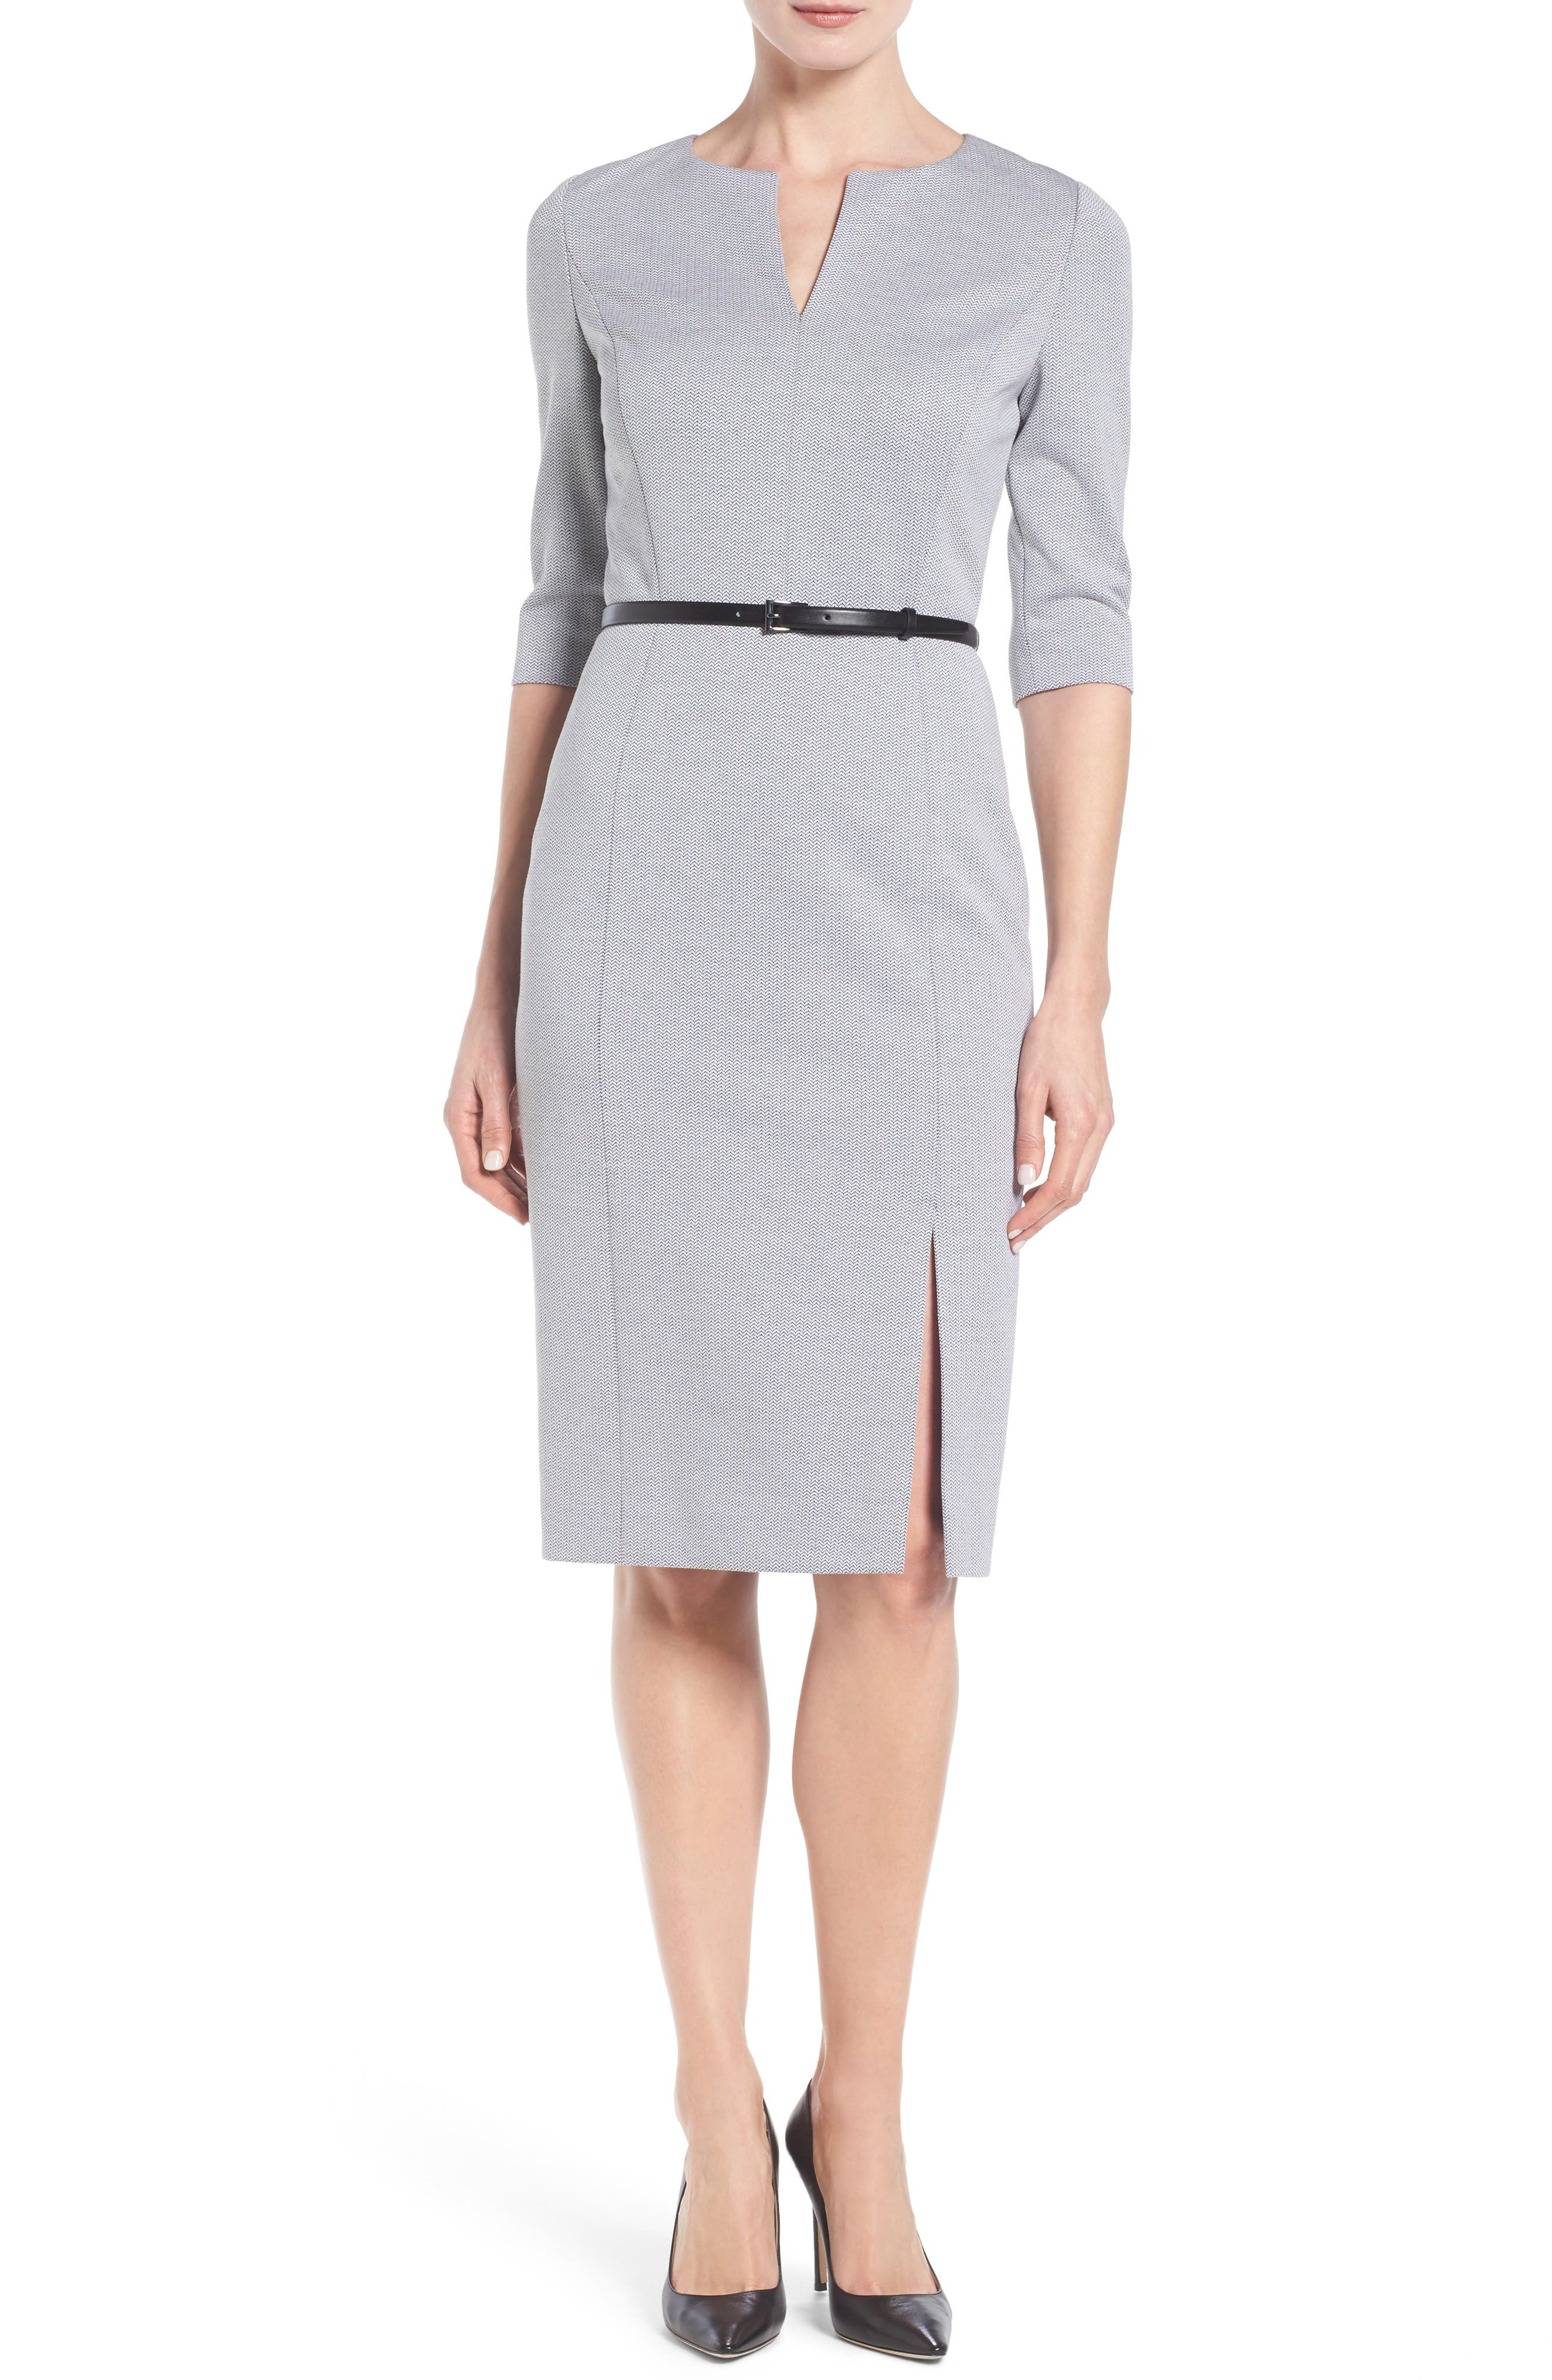 Alternate Image 1 Selected - Classiques Entier® Stretch Knit Sheath Dress